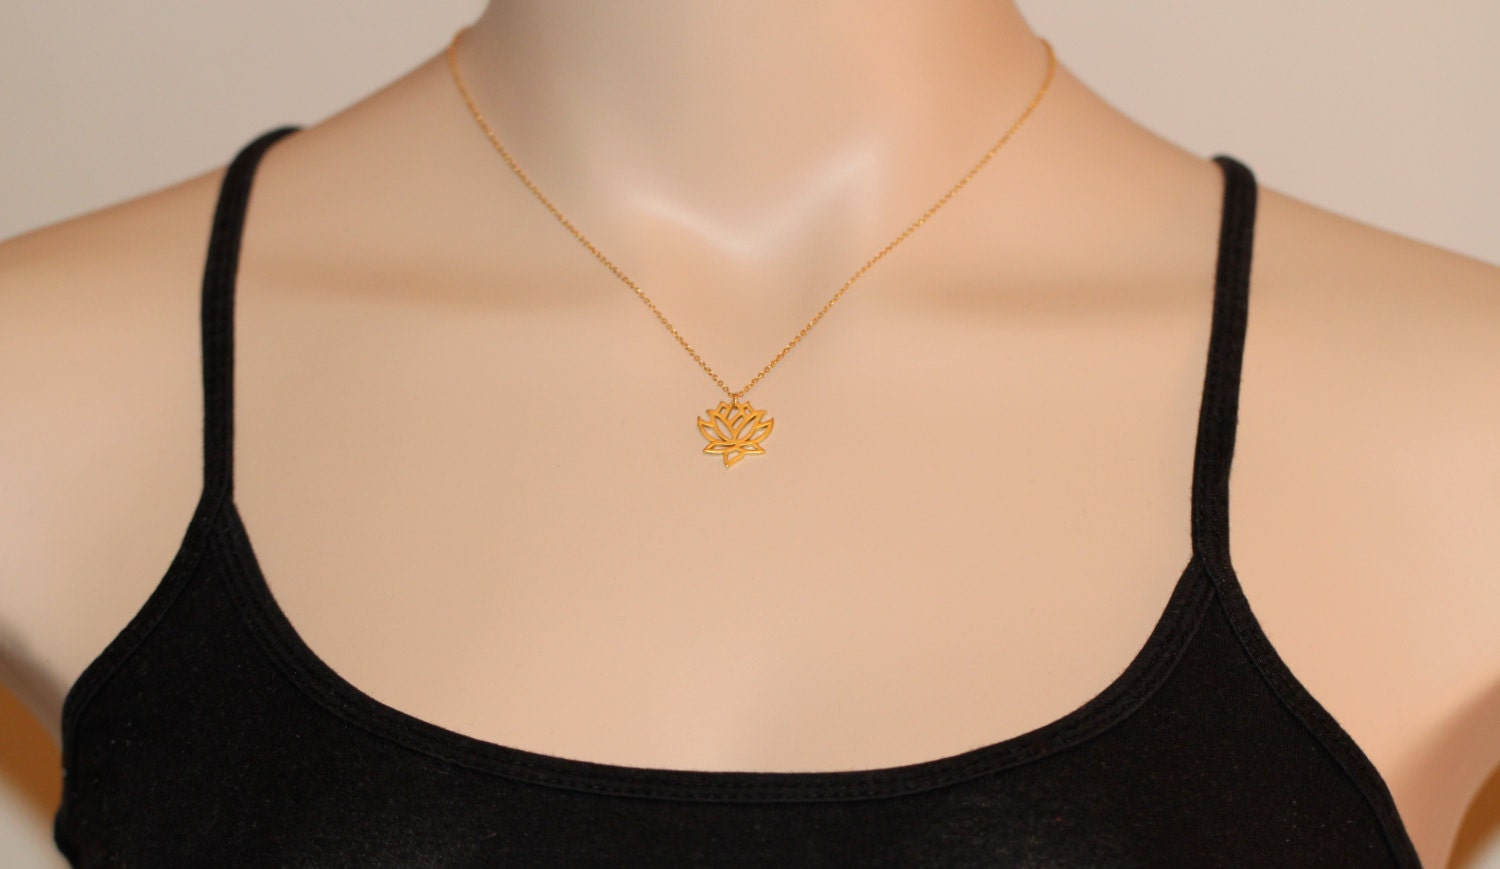 Lotus Necklace Gold Lotus Flower Yoga Necklace Flower Necklace